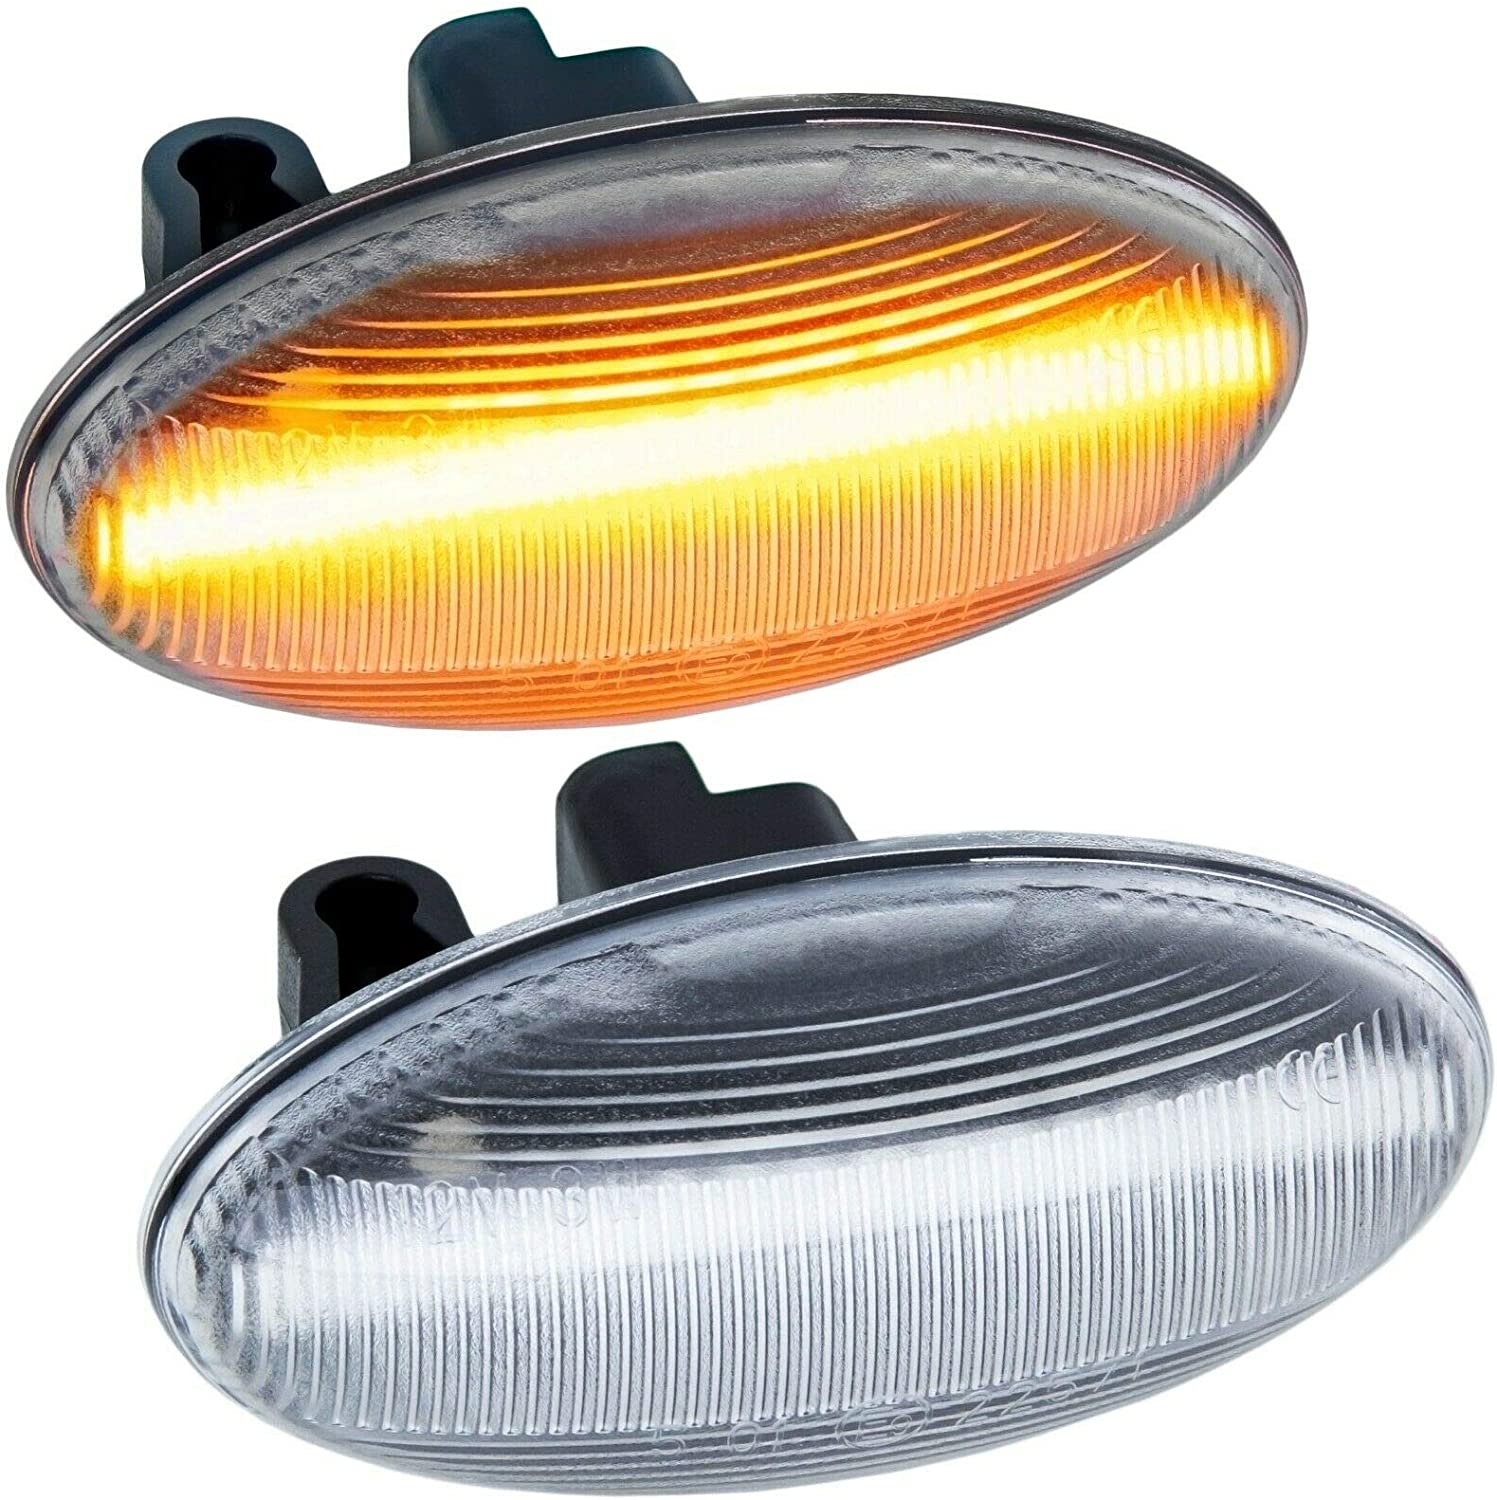 607 Clear Glass 407 108 1007 rm-style LED Side Indicator Compatible with Peugeot 107 206 307